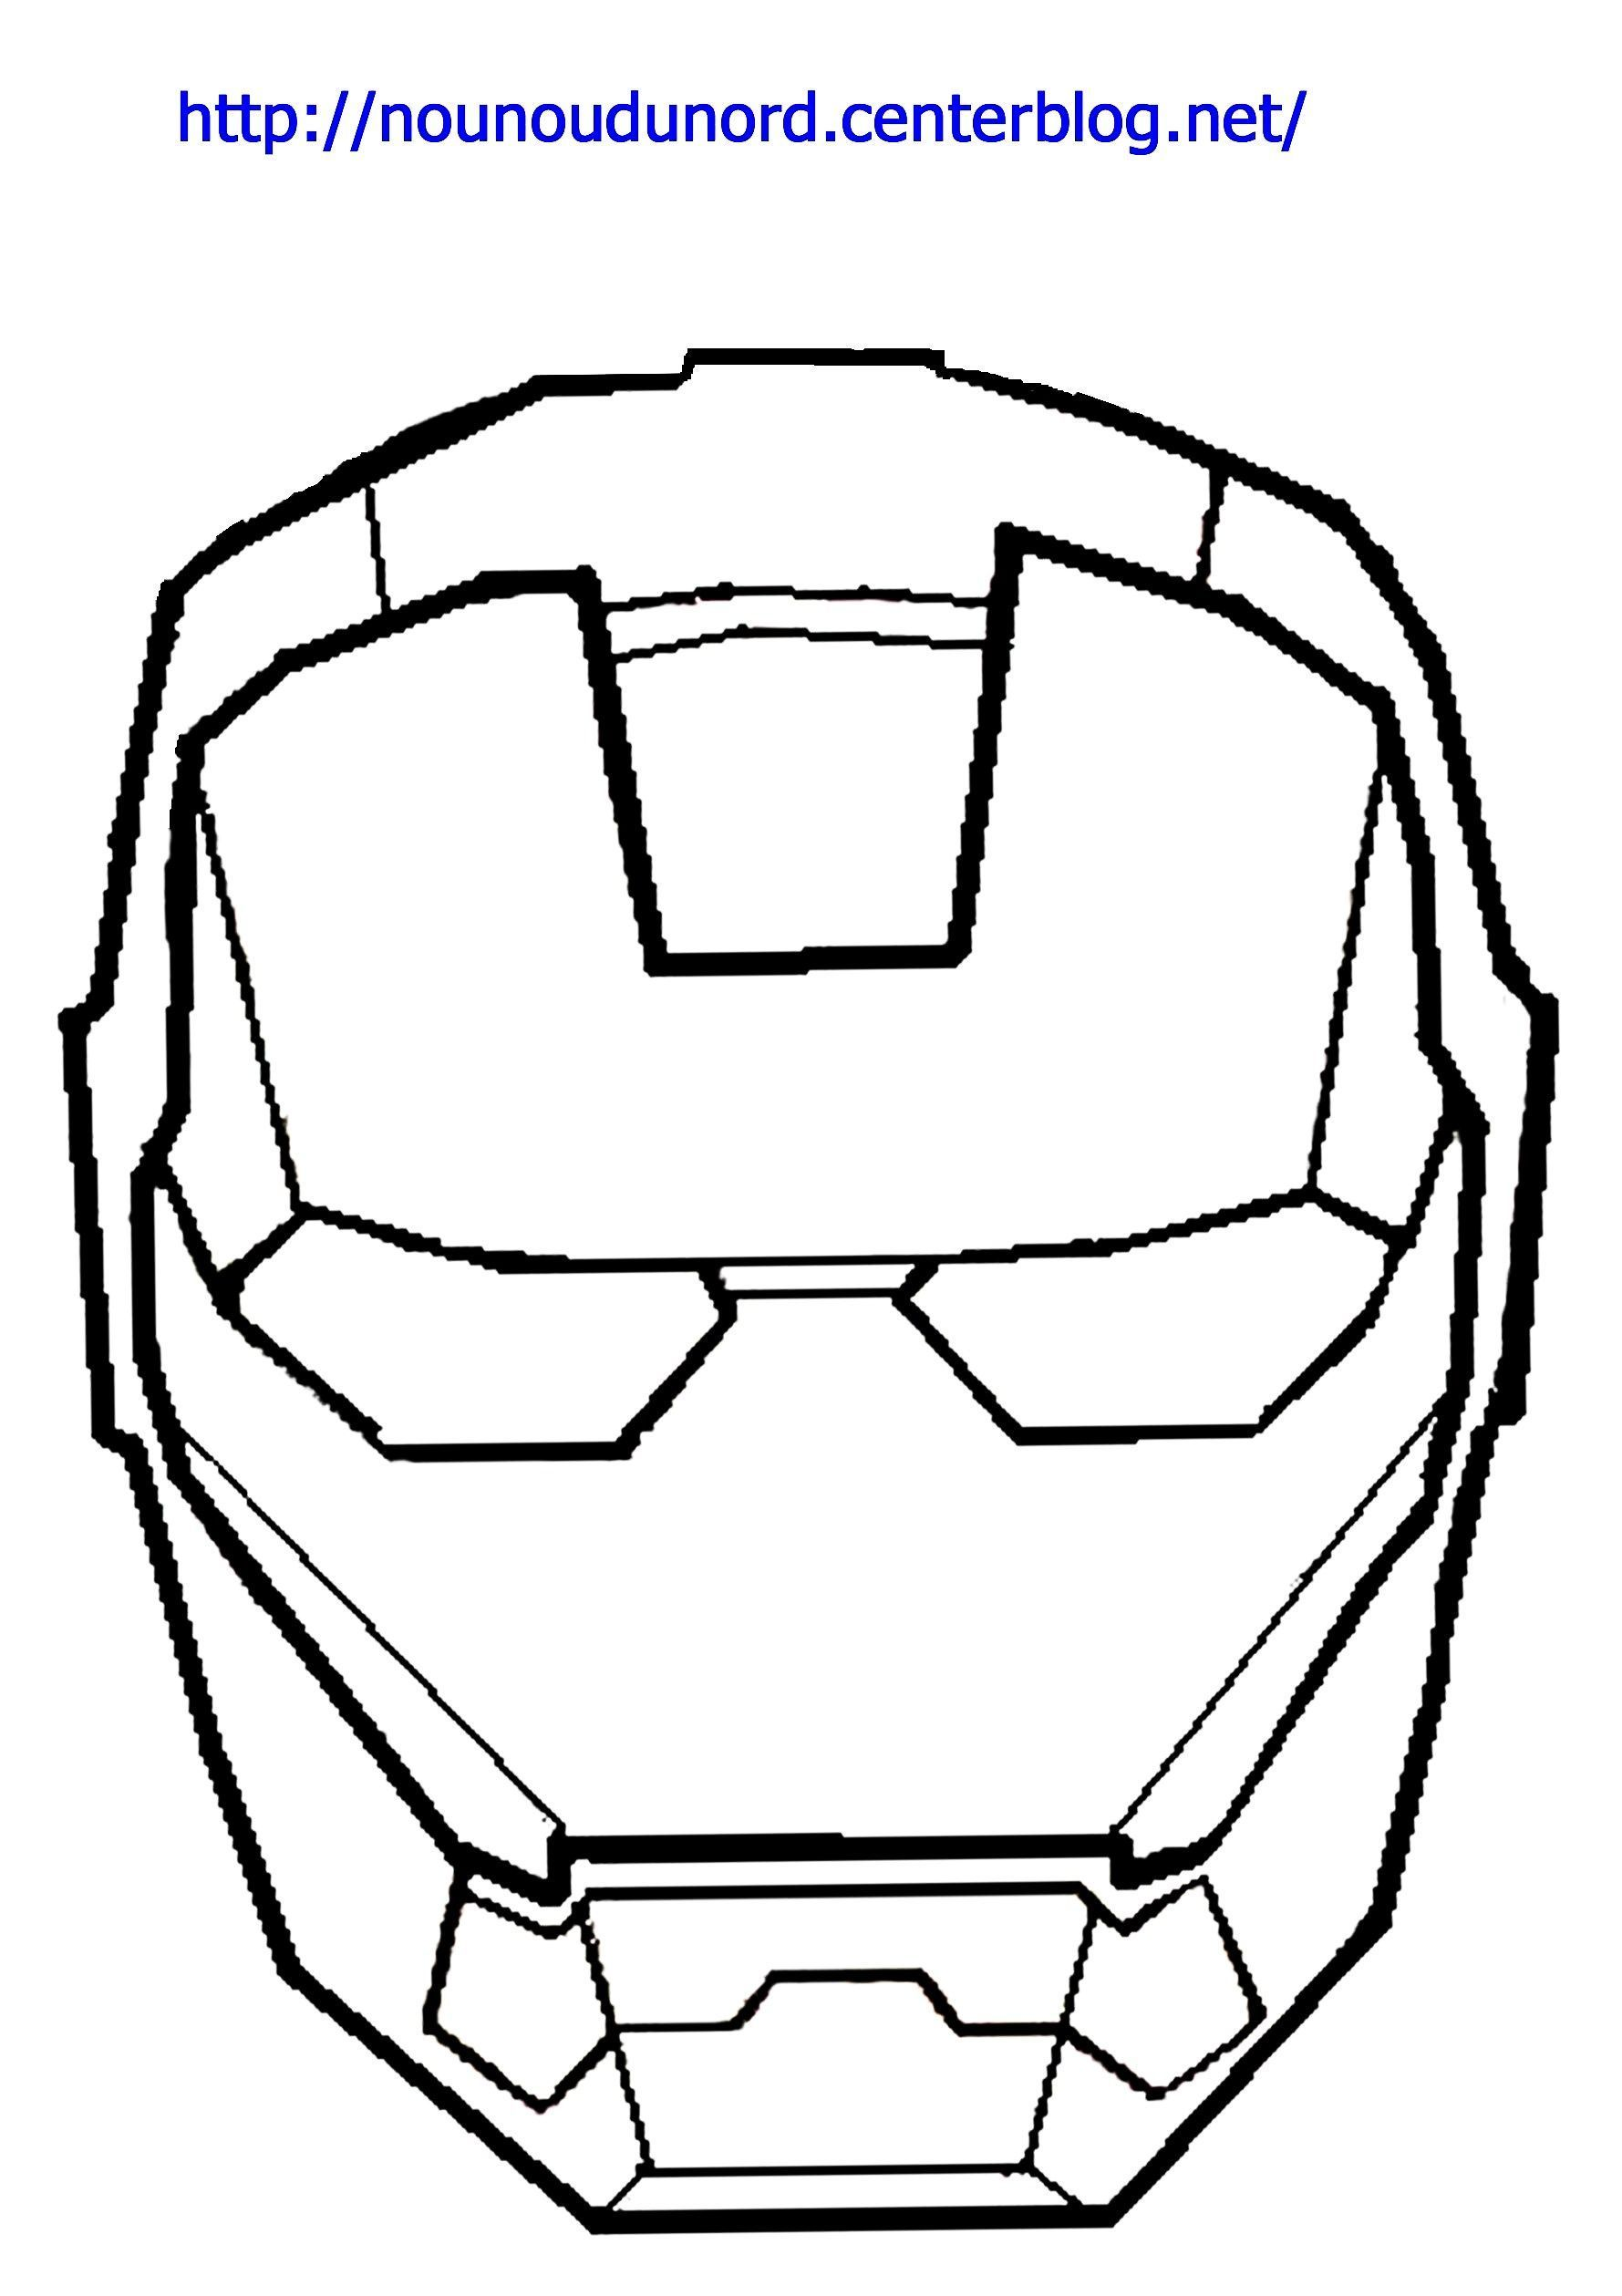 Avengers Symbol Coloring Pages : Avengers logo coloring page pages